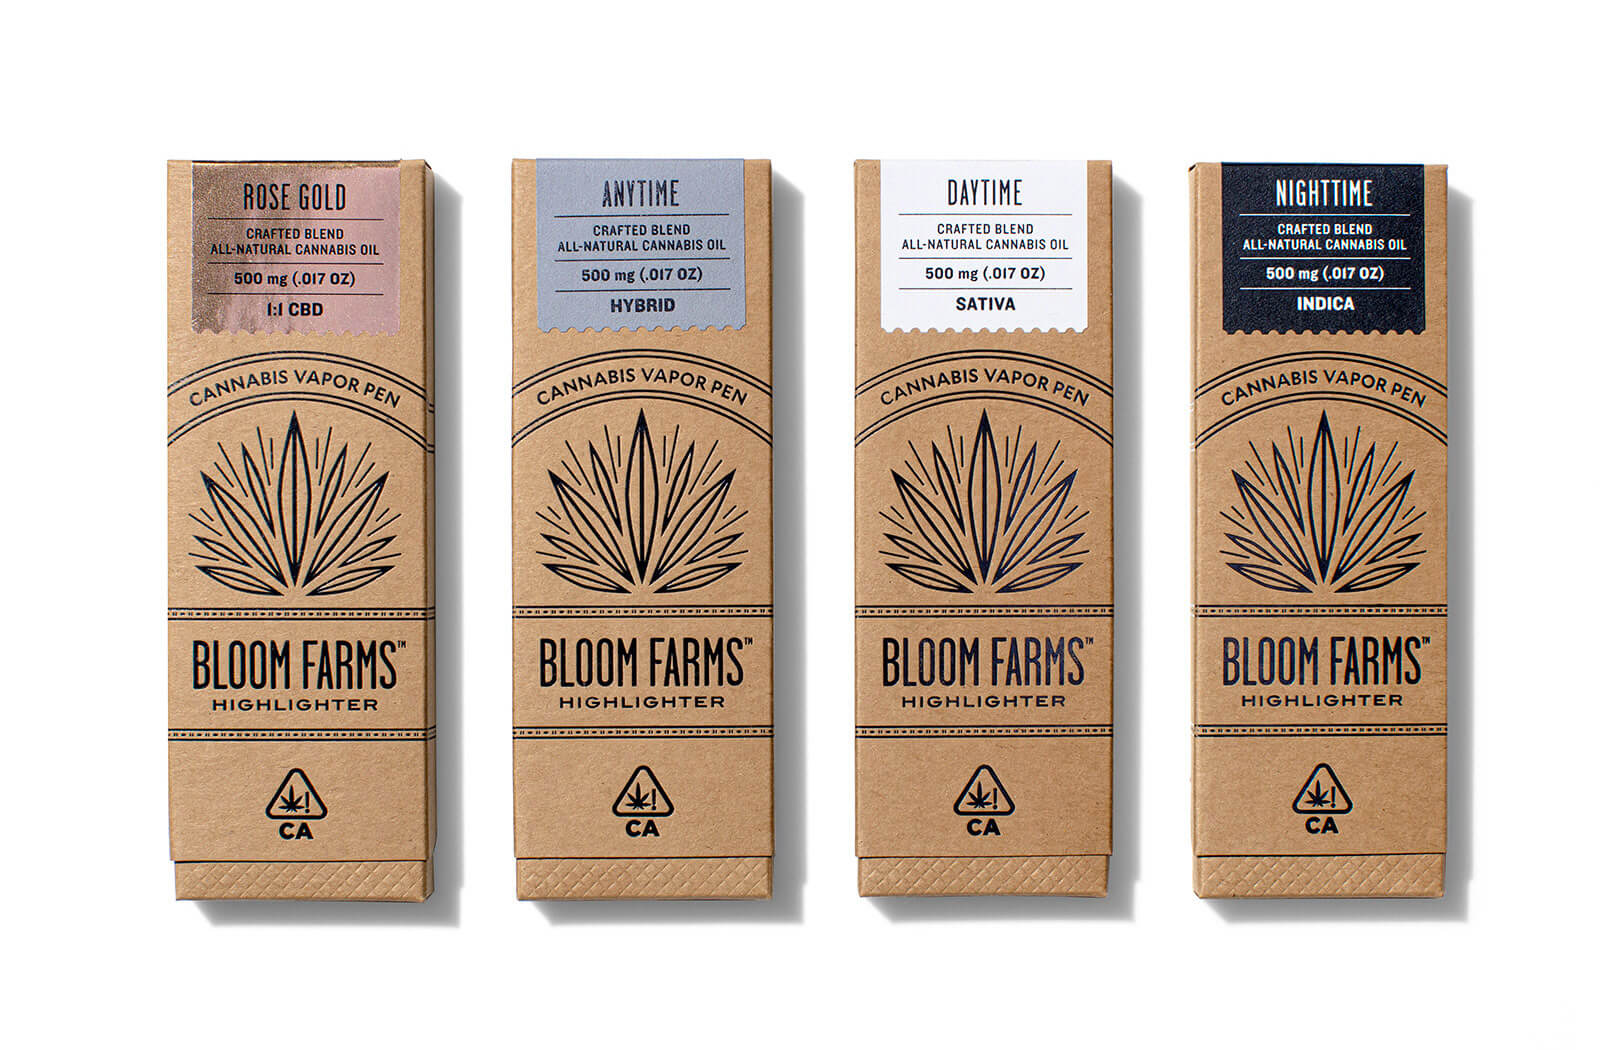 Bloom Farms Packaging Design